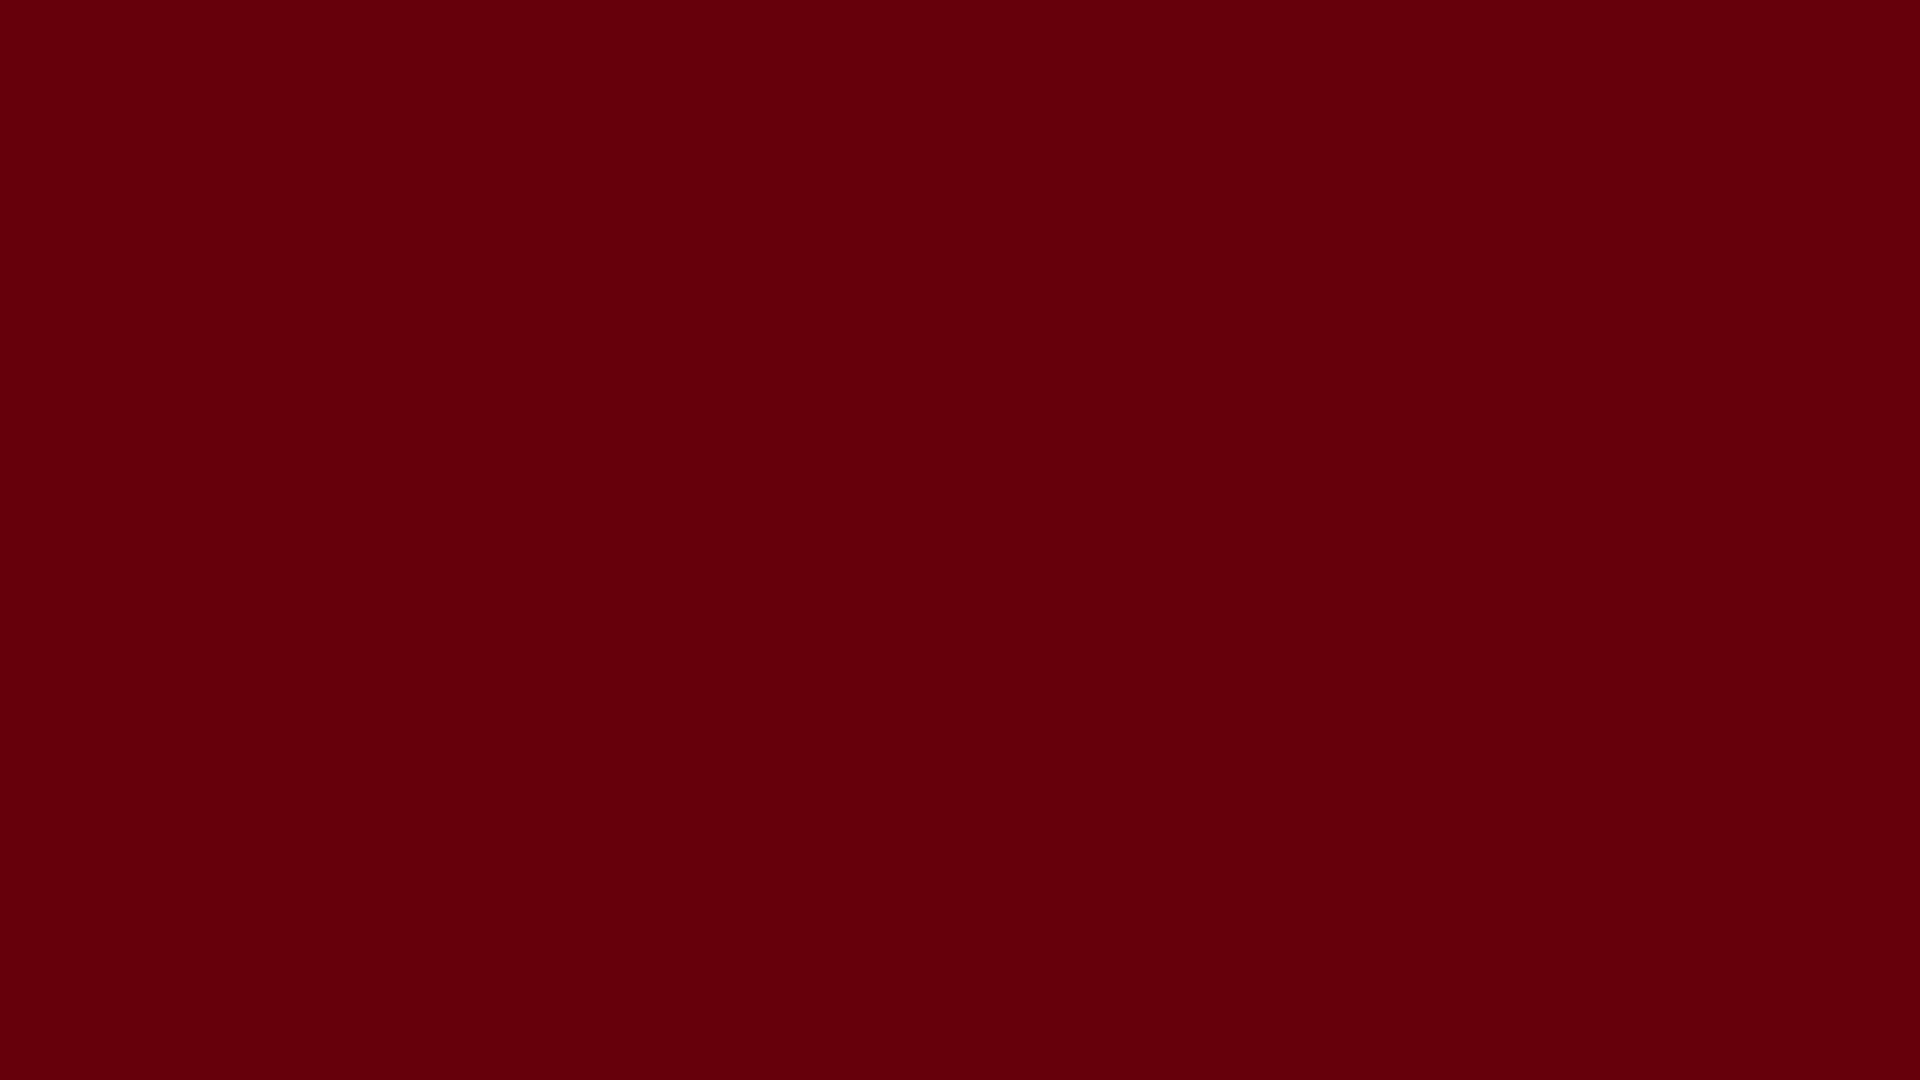 1920x1080 Rosewood Solid Color Background